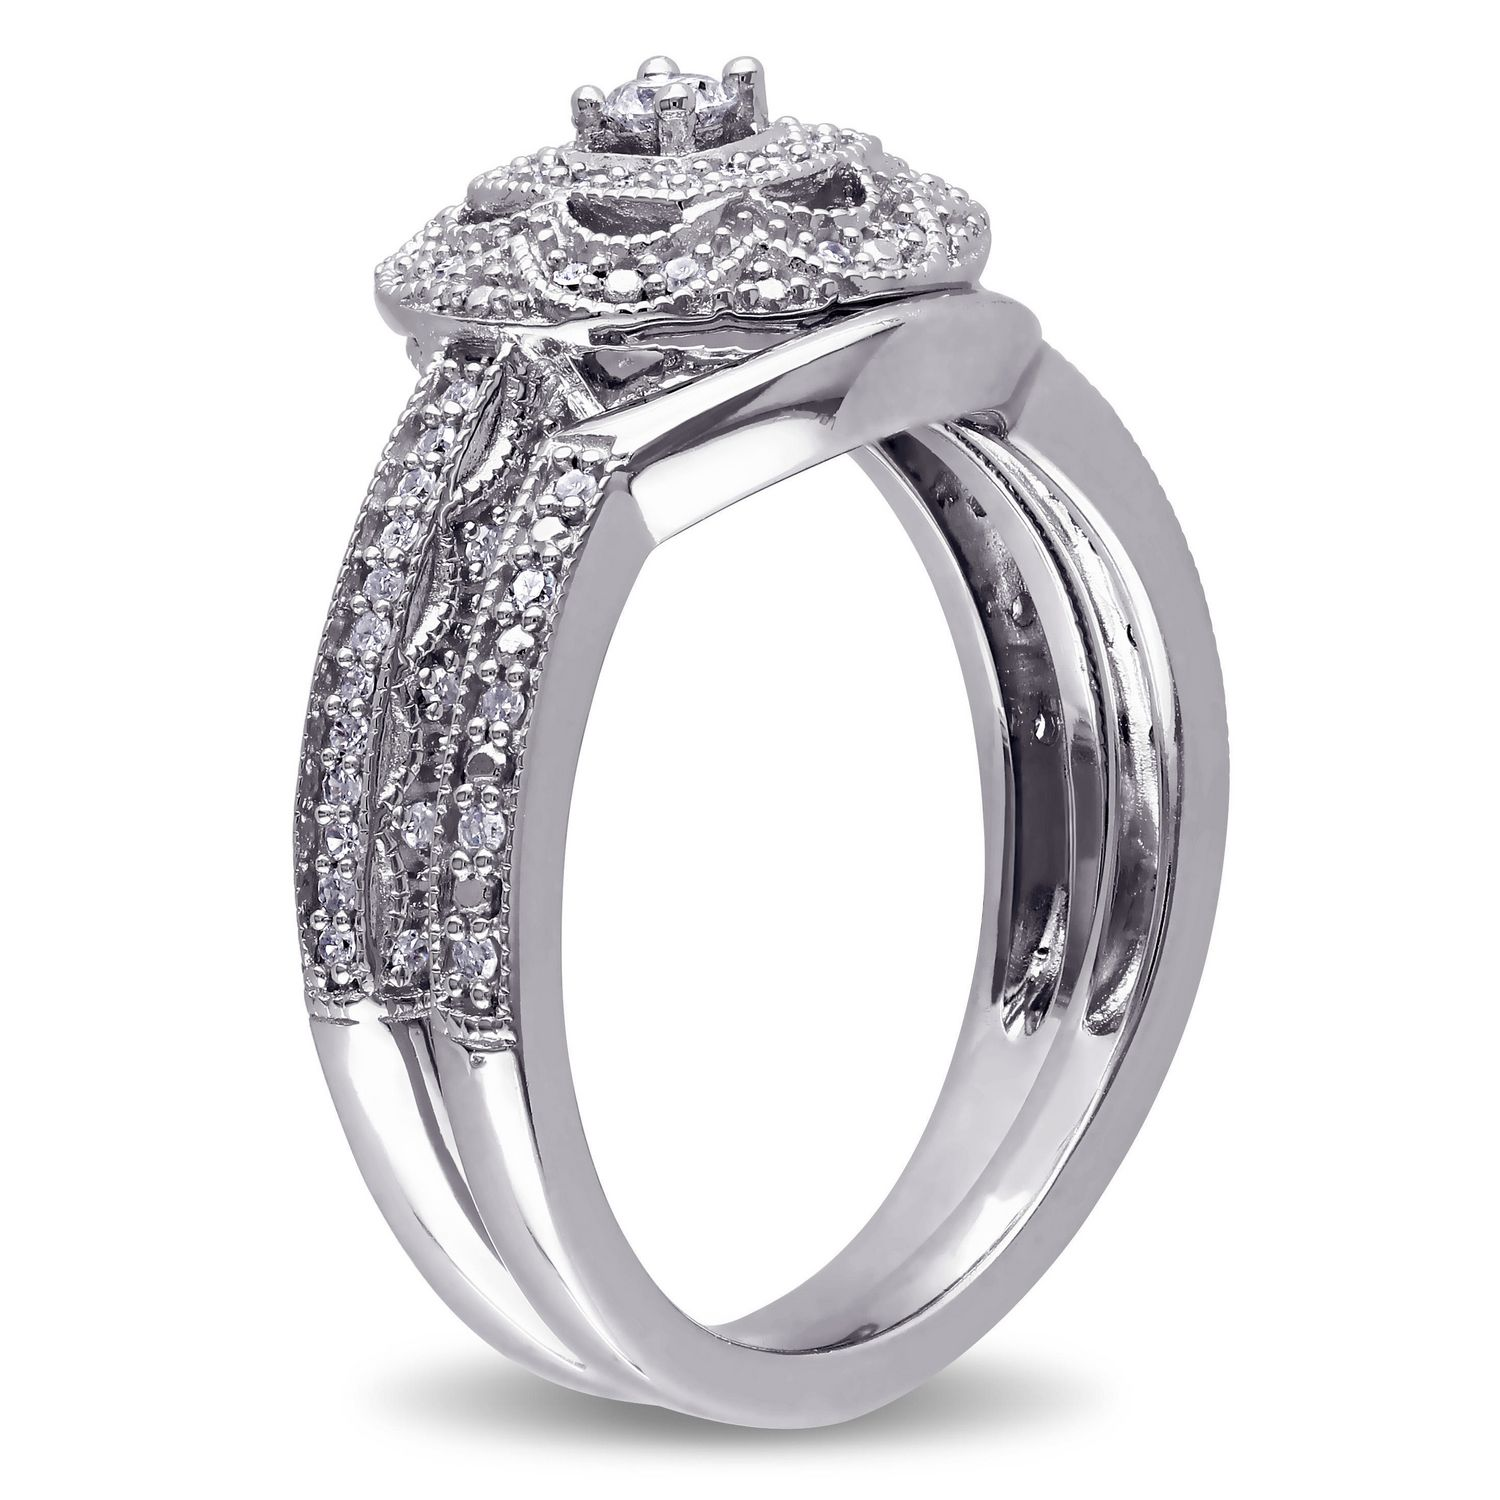 featured g cut carat engagement miabella square zirconia rings t w inspirations photo and cubic throughout walmart round of